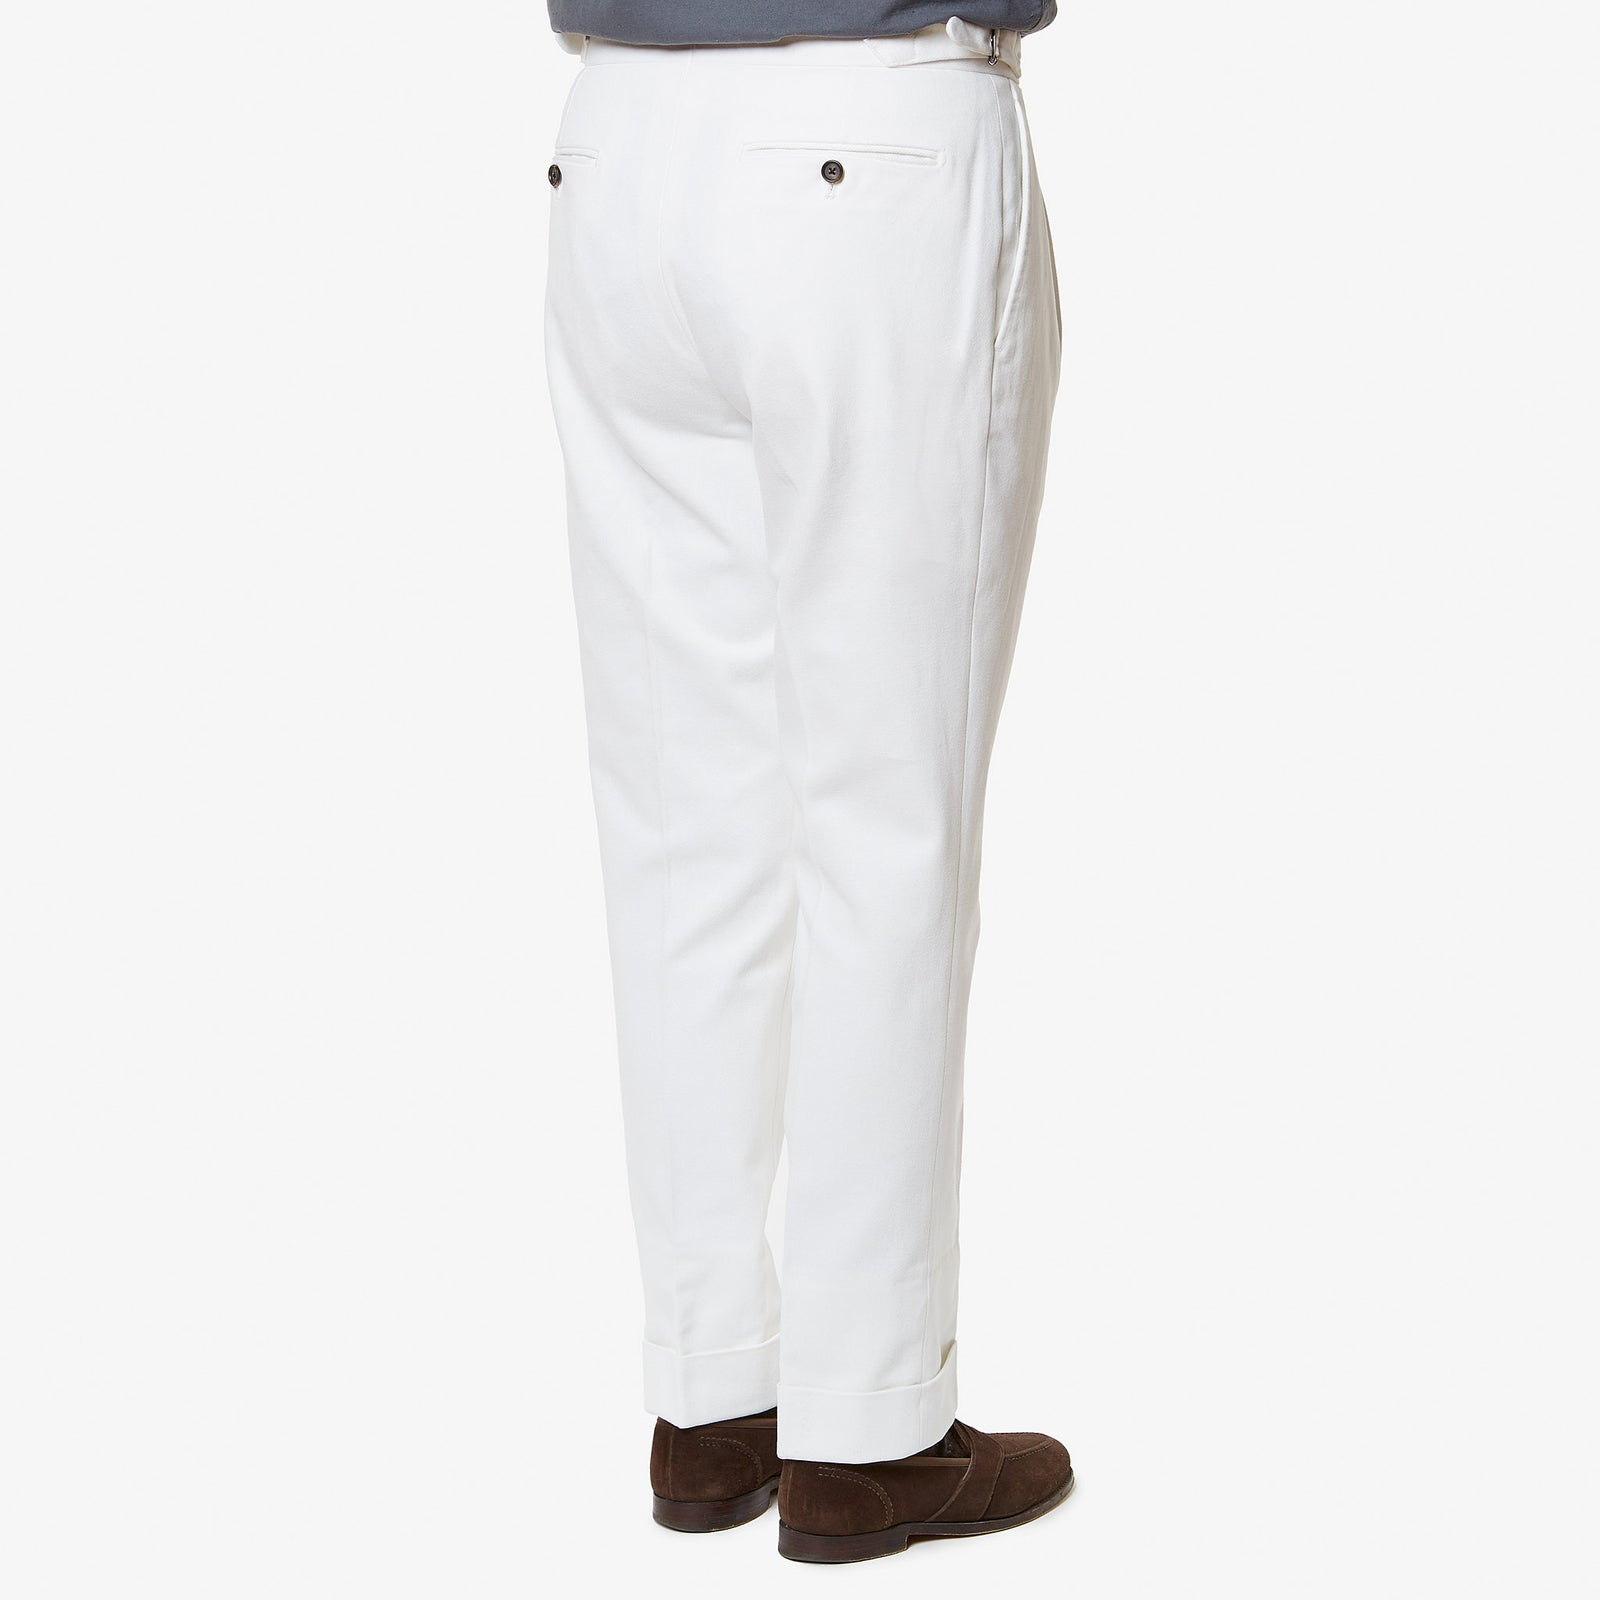 Trouser Cotton Drill White